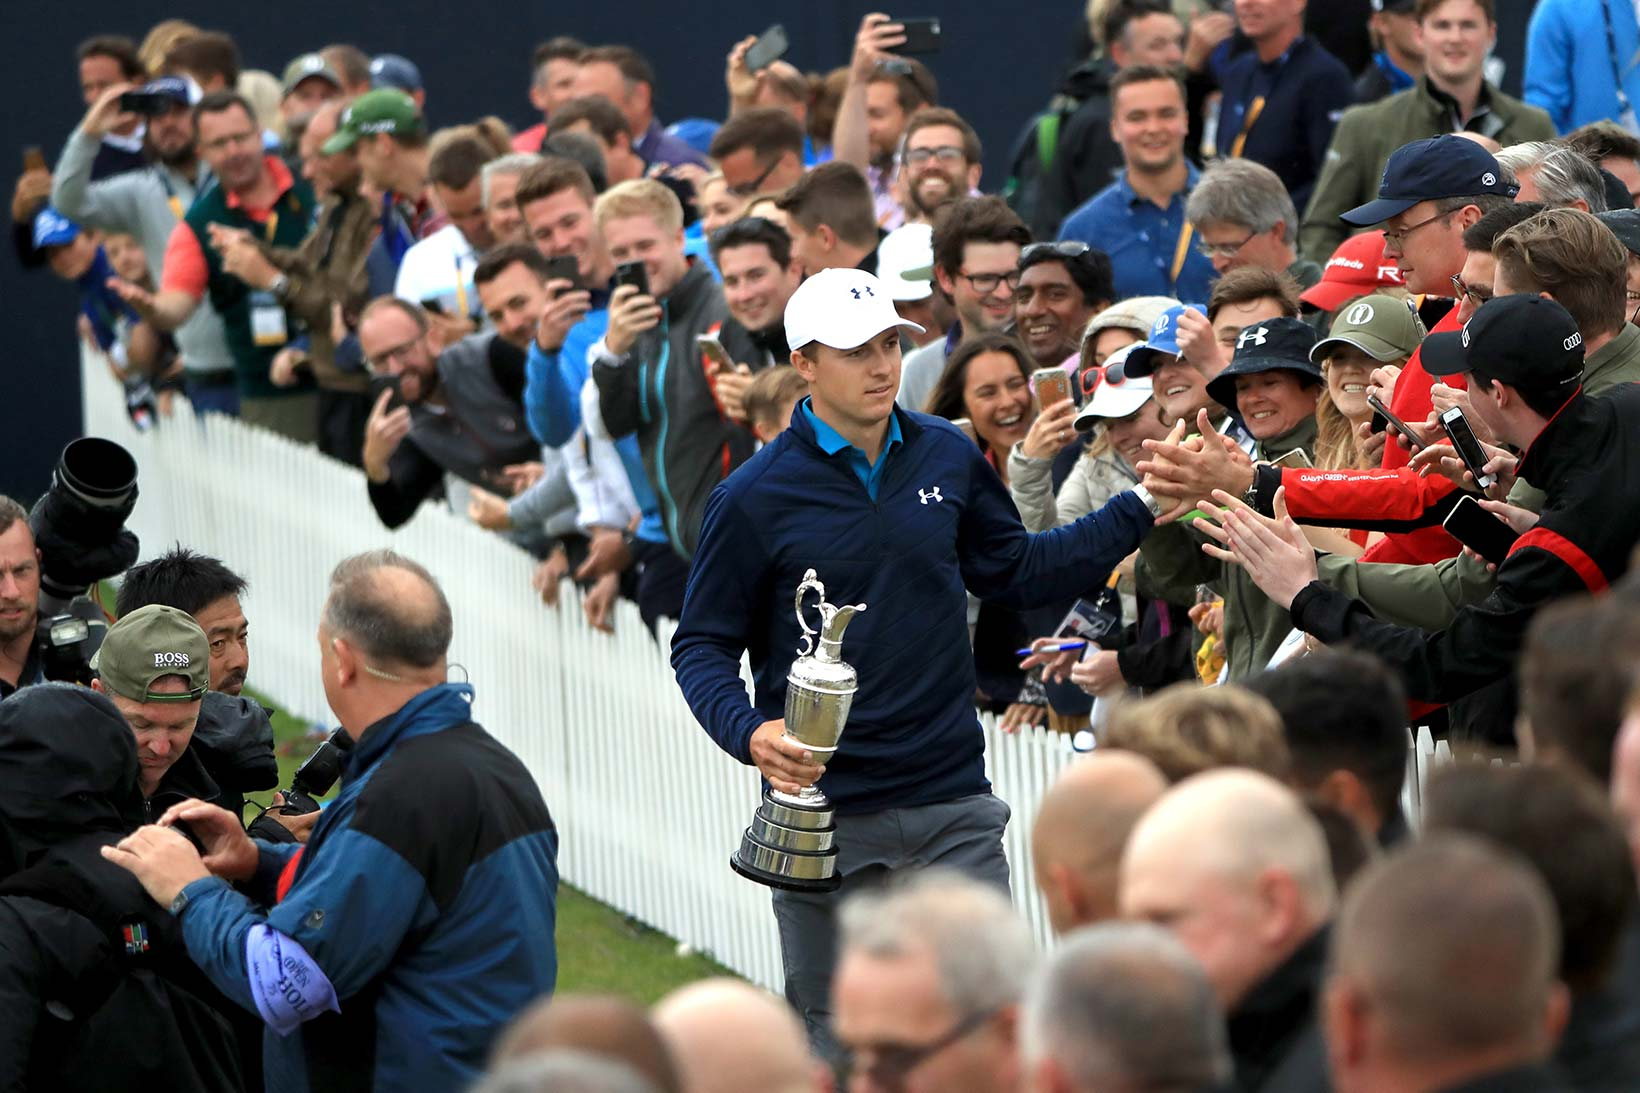 2017 Open Championship: Final Round - Jordan Greets the Gallery